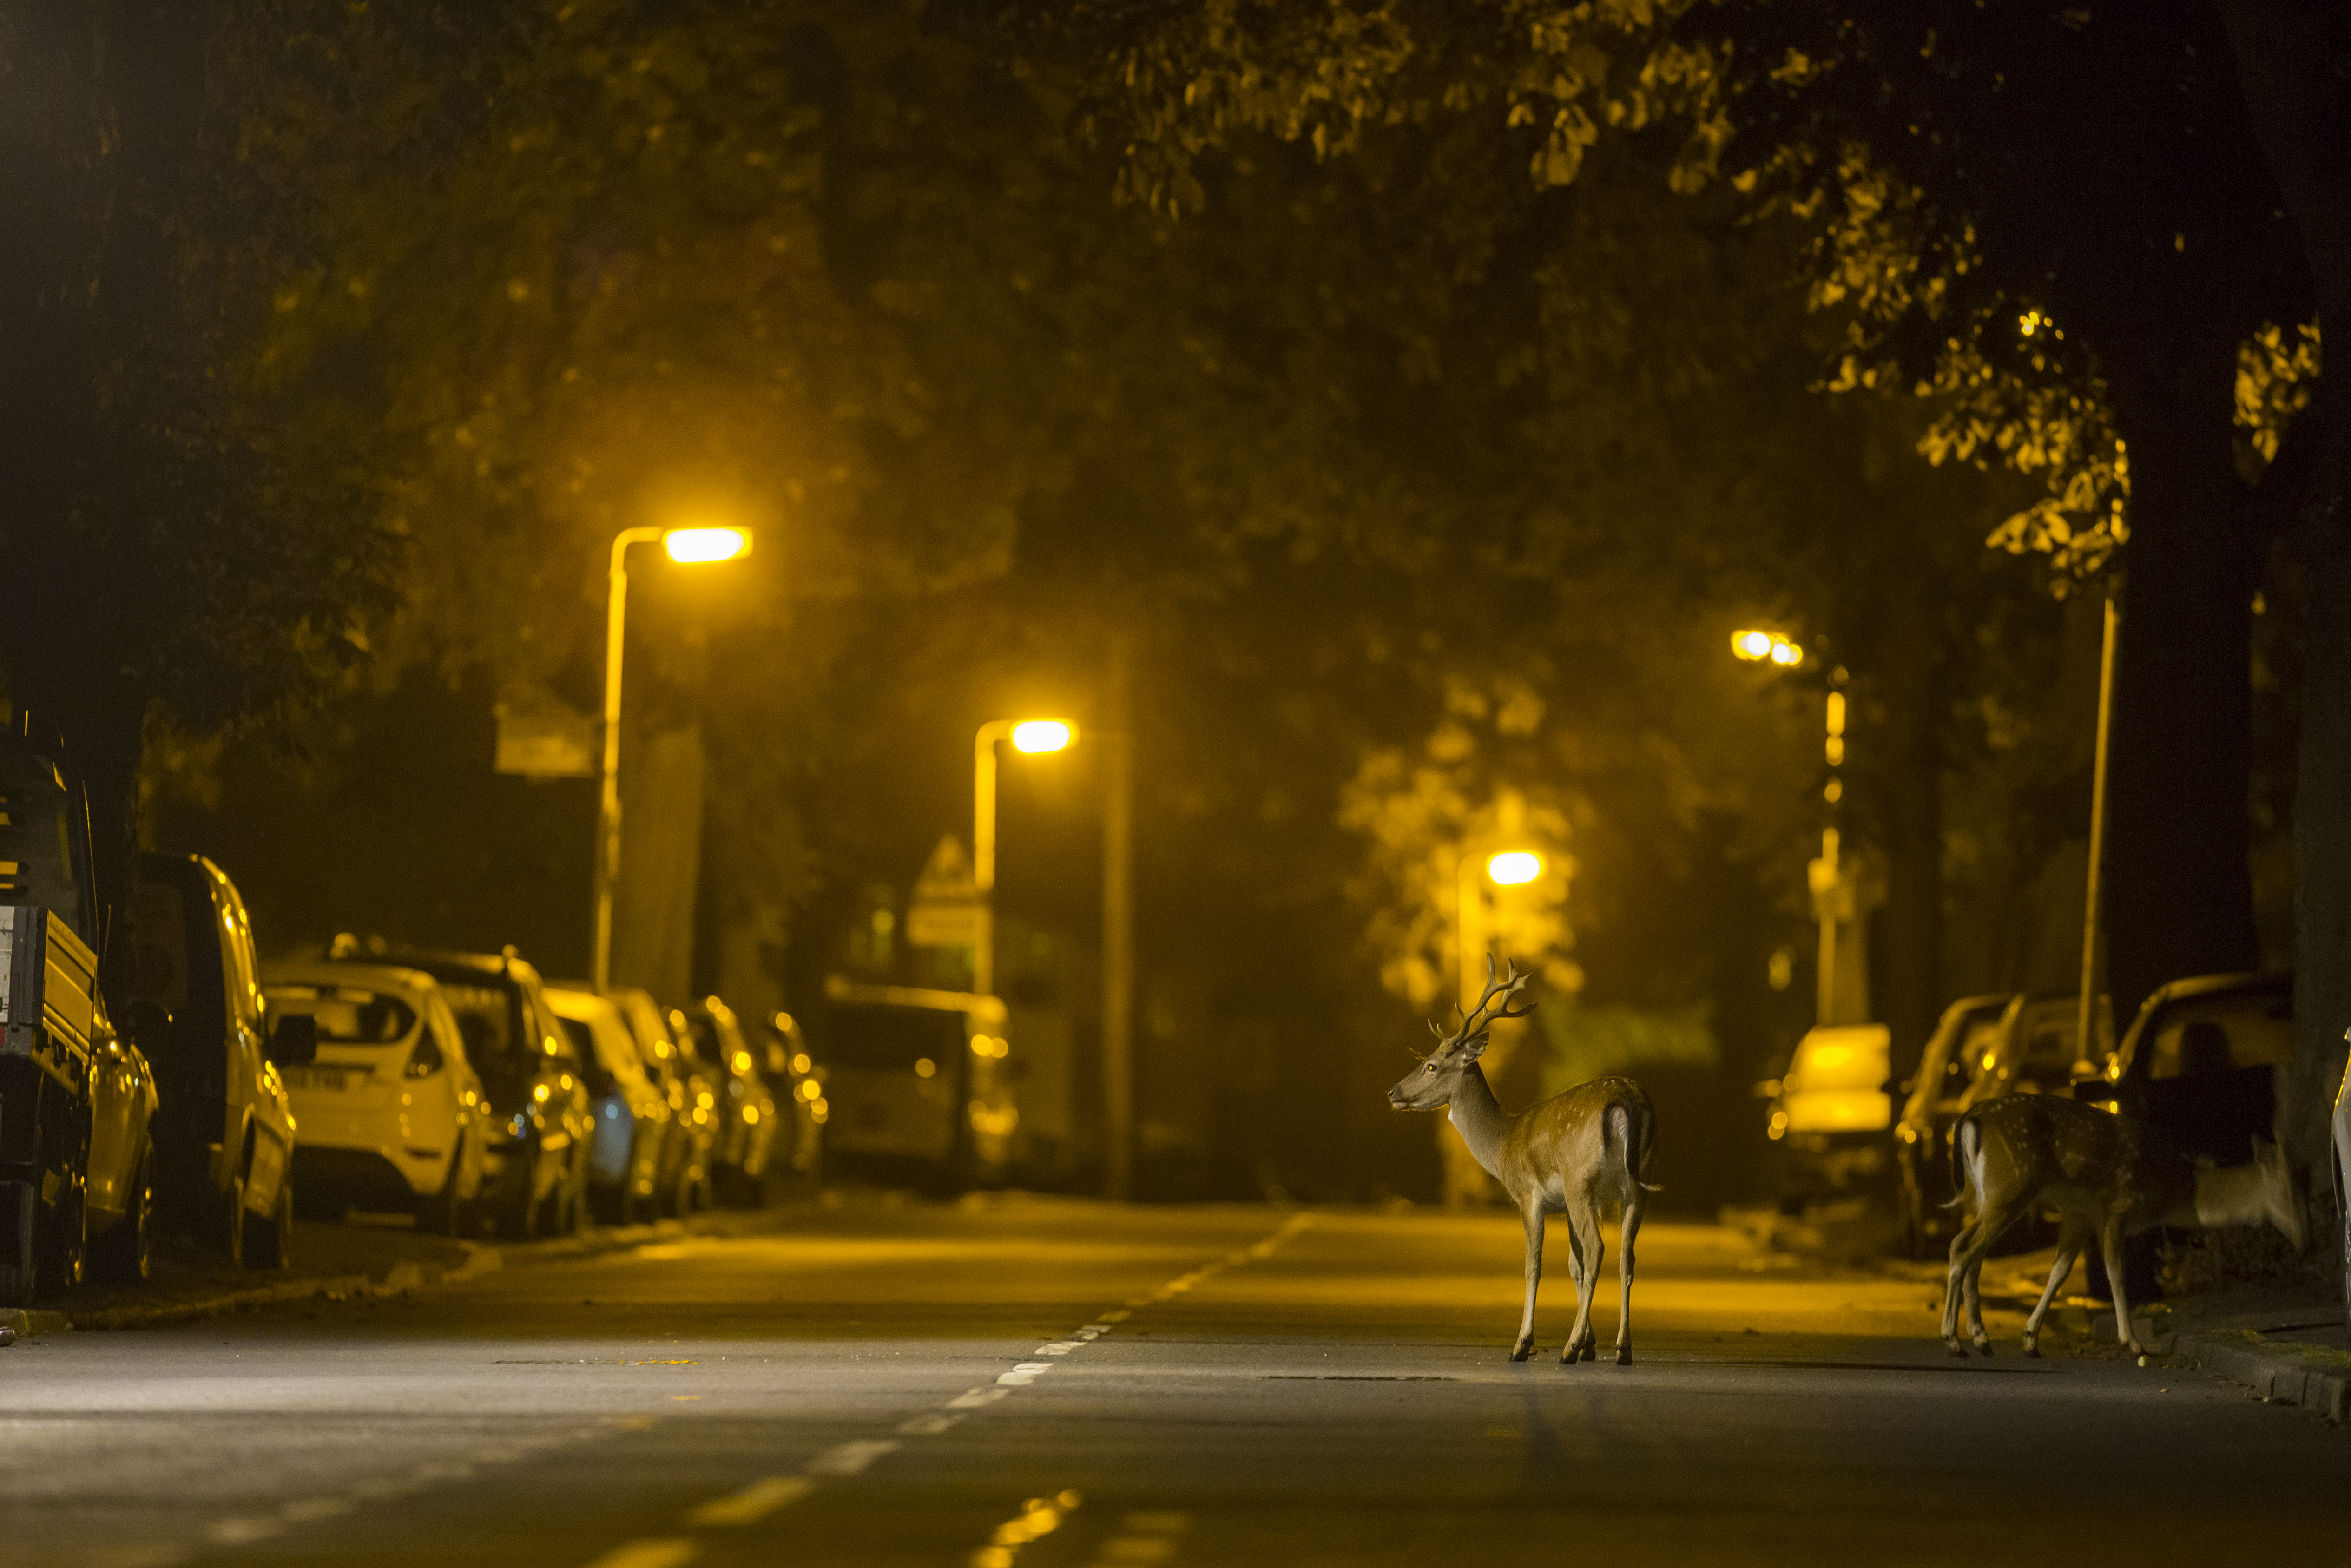 Urban-fallow-deer-in-street-at-night-time-1